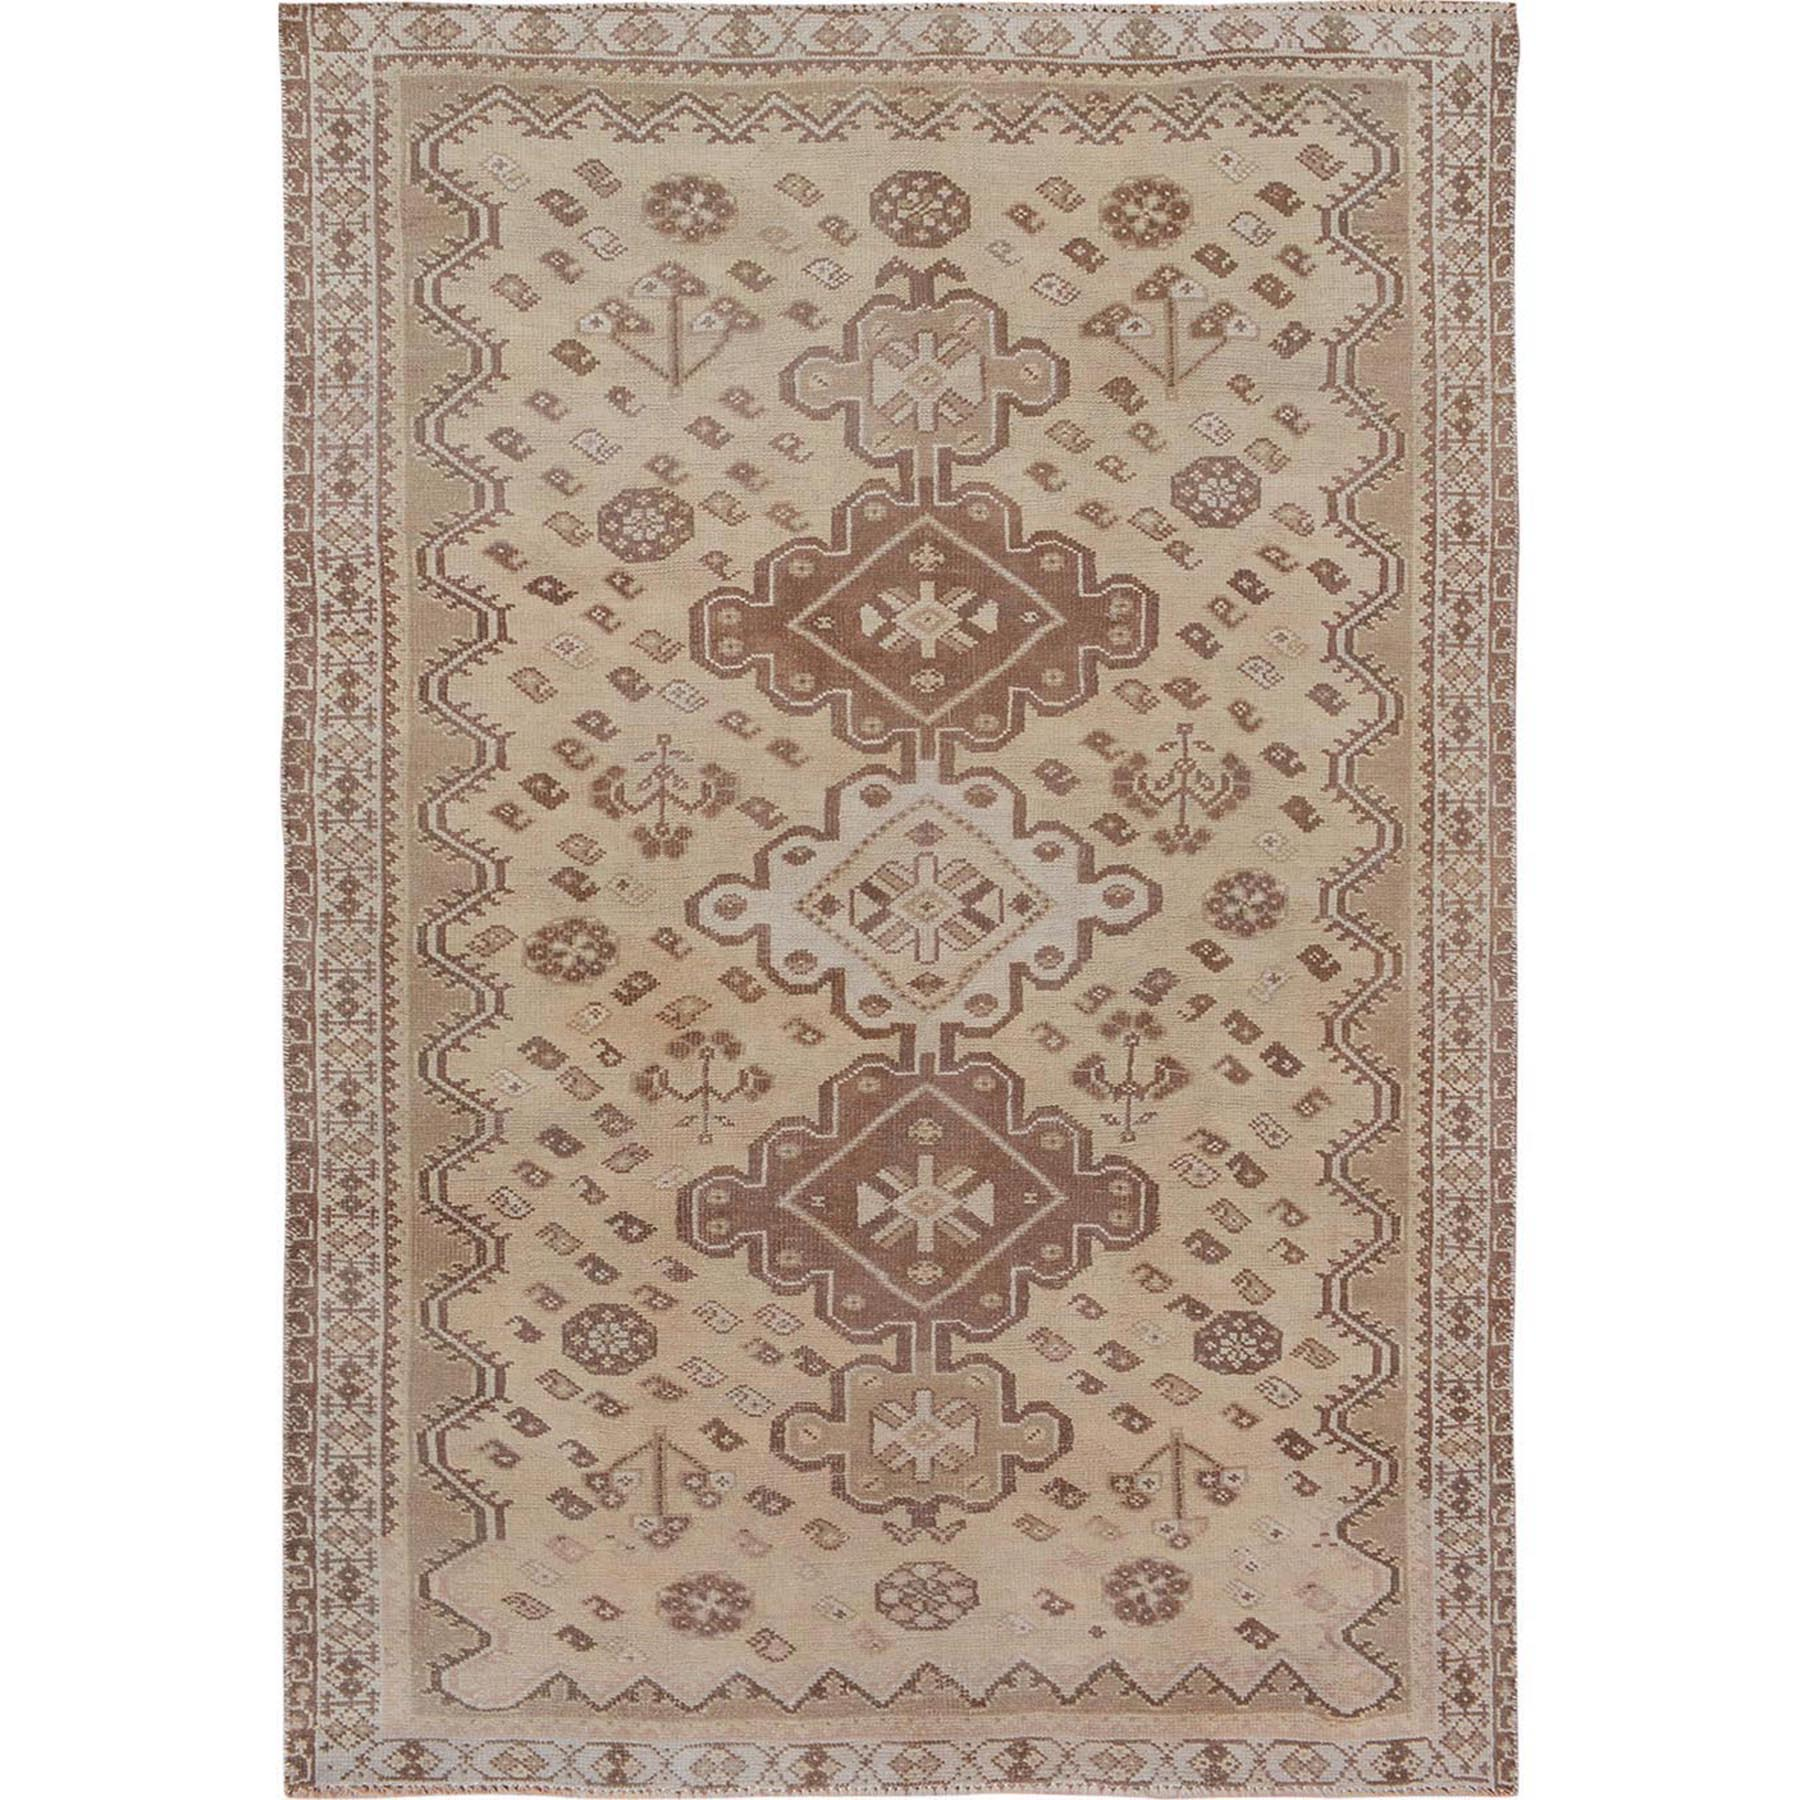 "5'x7'5"" Earth Tones Vintage and Worn Down Persian Shiraz Clean Pure Wool Hand Woven Oriental Rug"